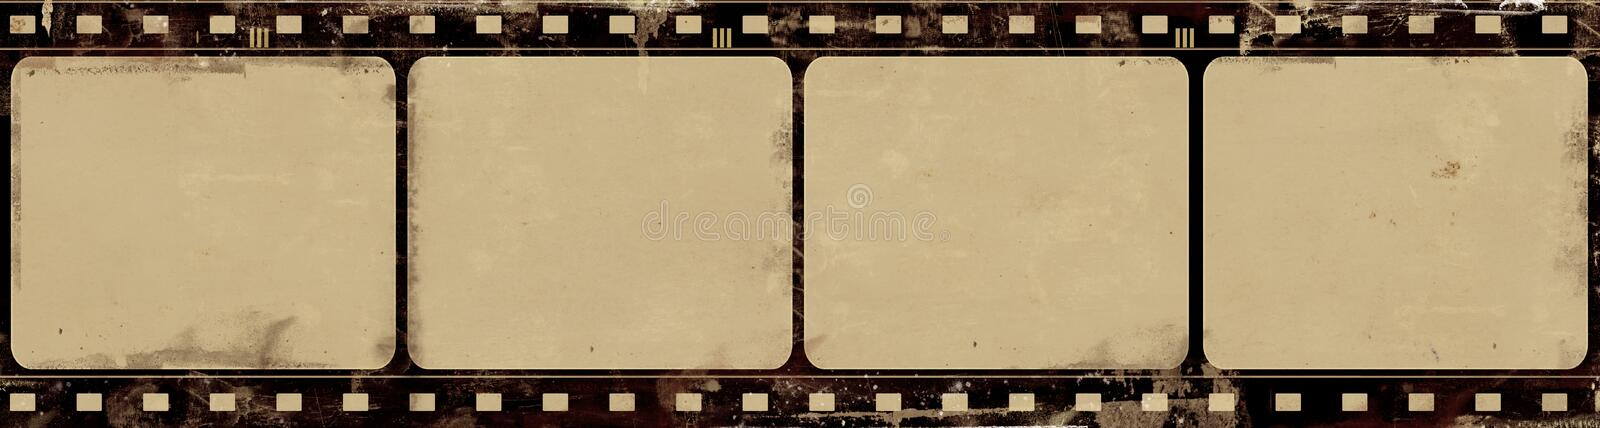 Download Grunge Film Frame With Space For Text Or Image Royalty Free Stock Image - Image: 29680376